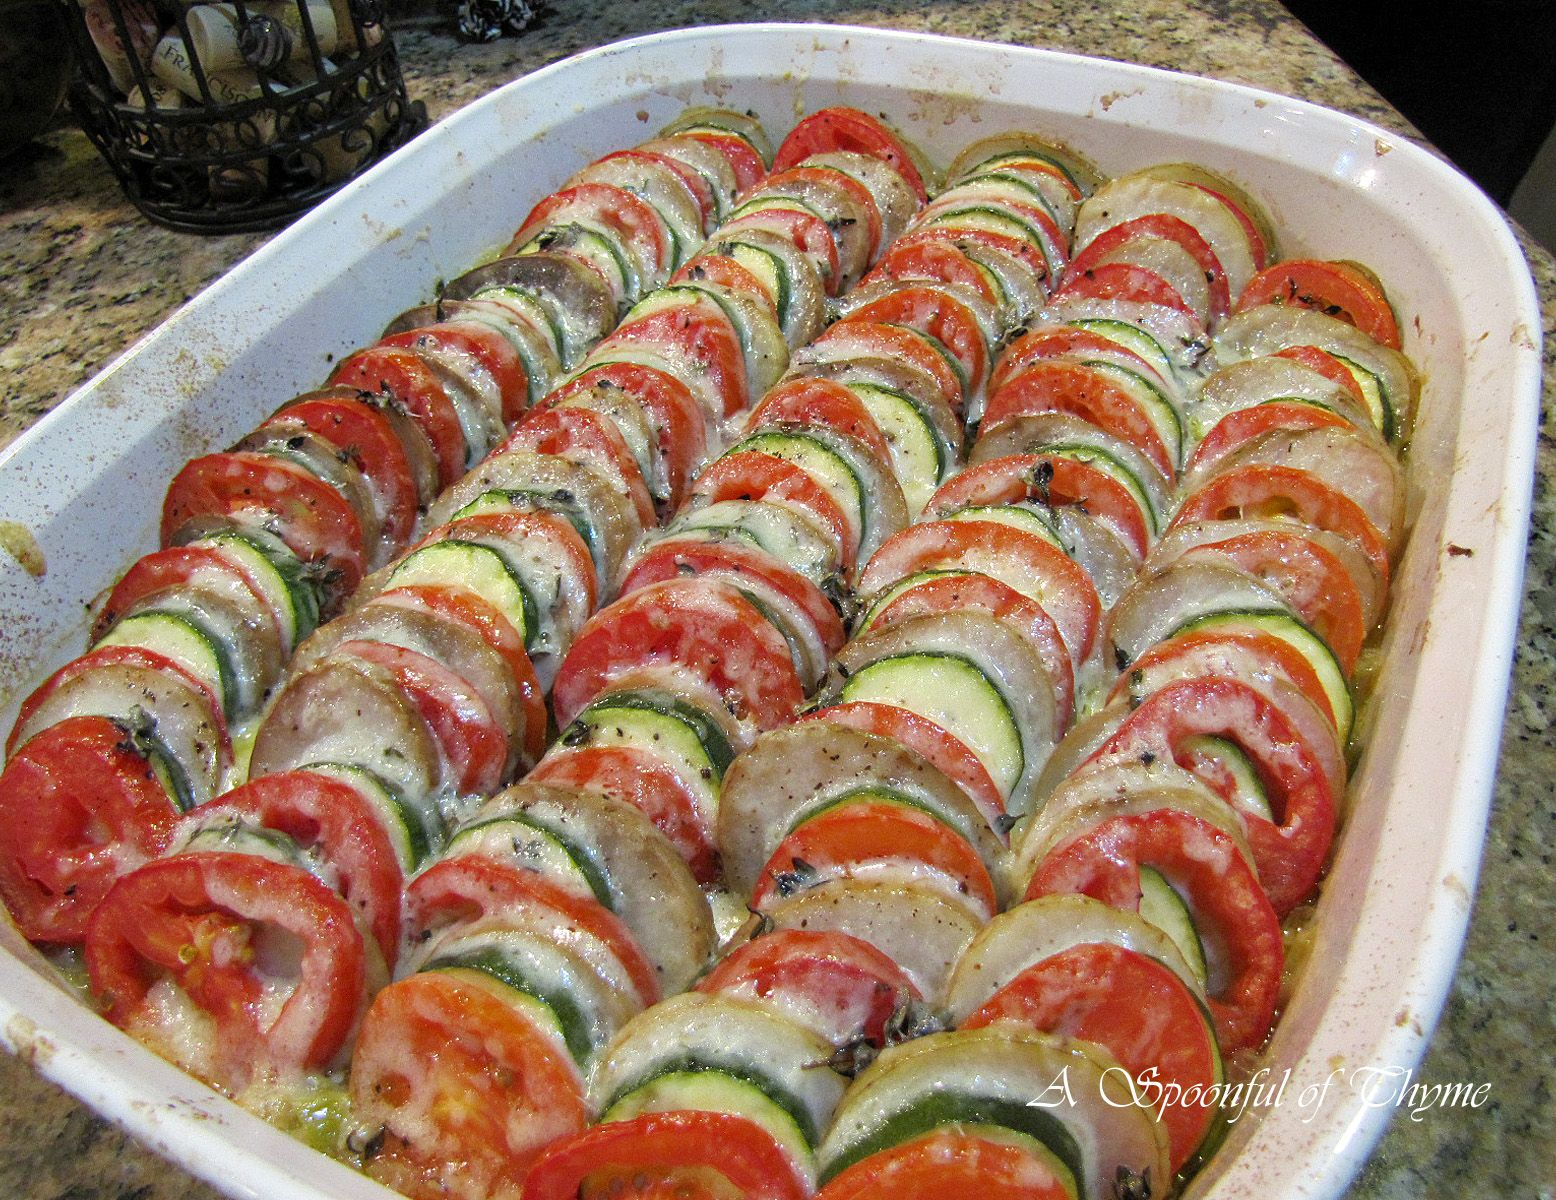 Vegetable Tian - a French recipe for baked veggies with gruyere cheese, yum!!